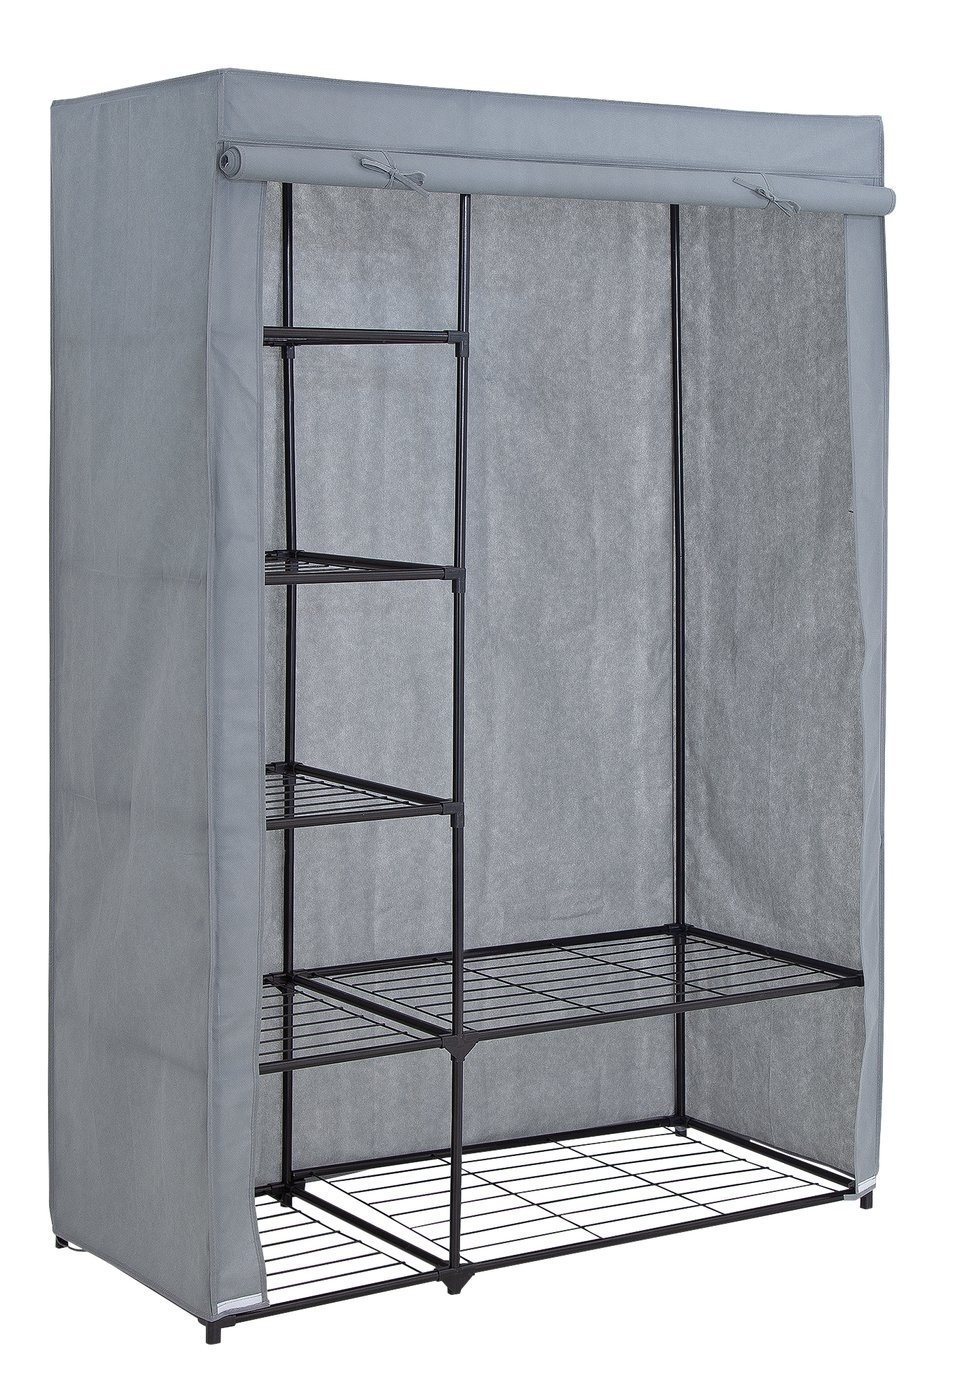 Argos Home Covered Double Wardrobe with Storage - Grey